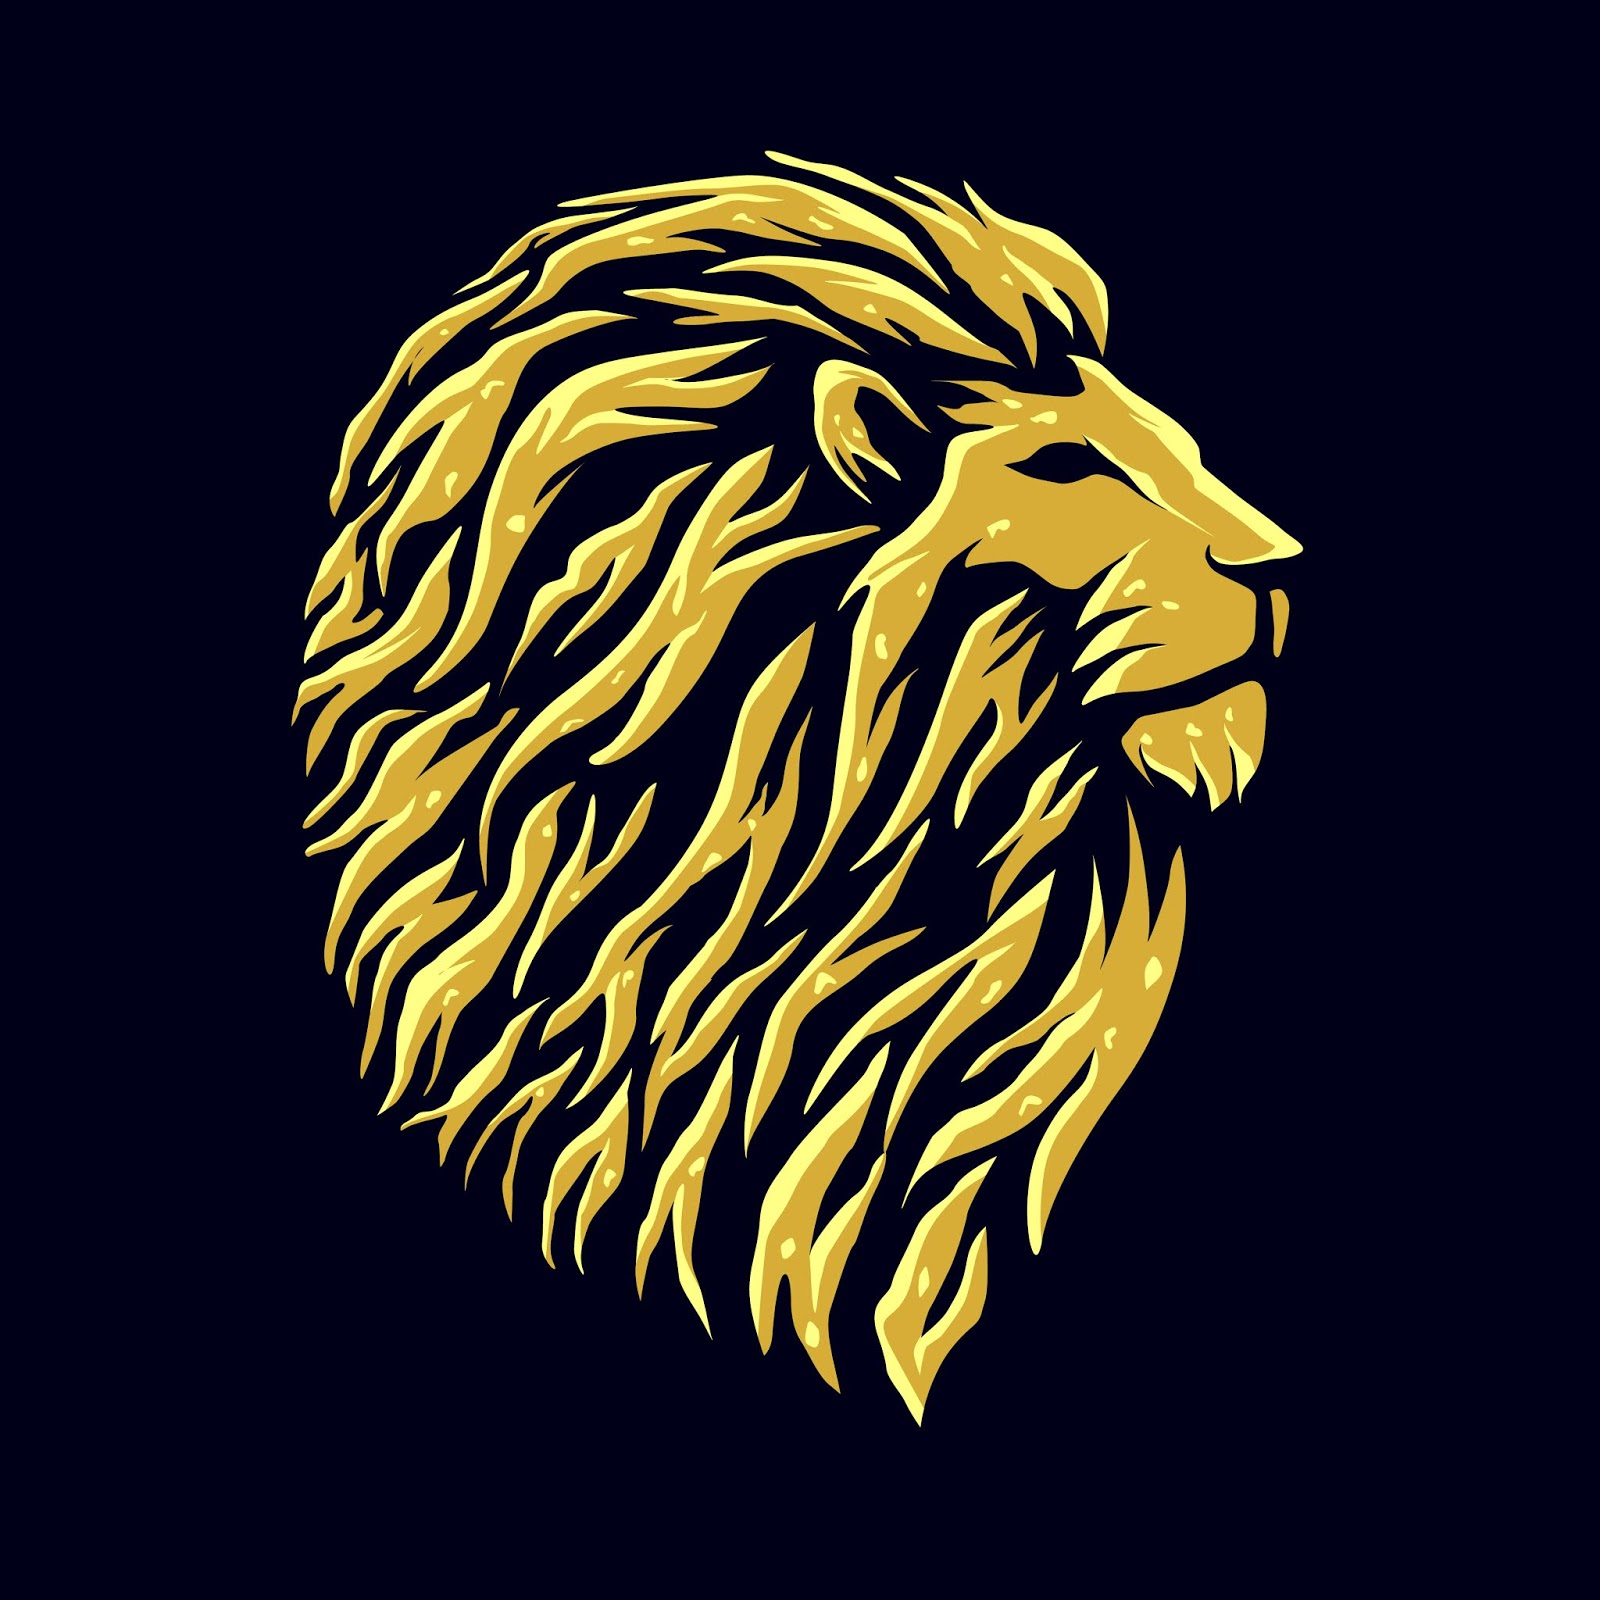 Golden Lion Head Logo Design Free Download Vector CDR, AI, EPS and PNG Formats